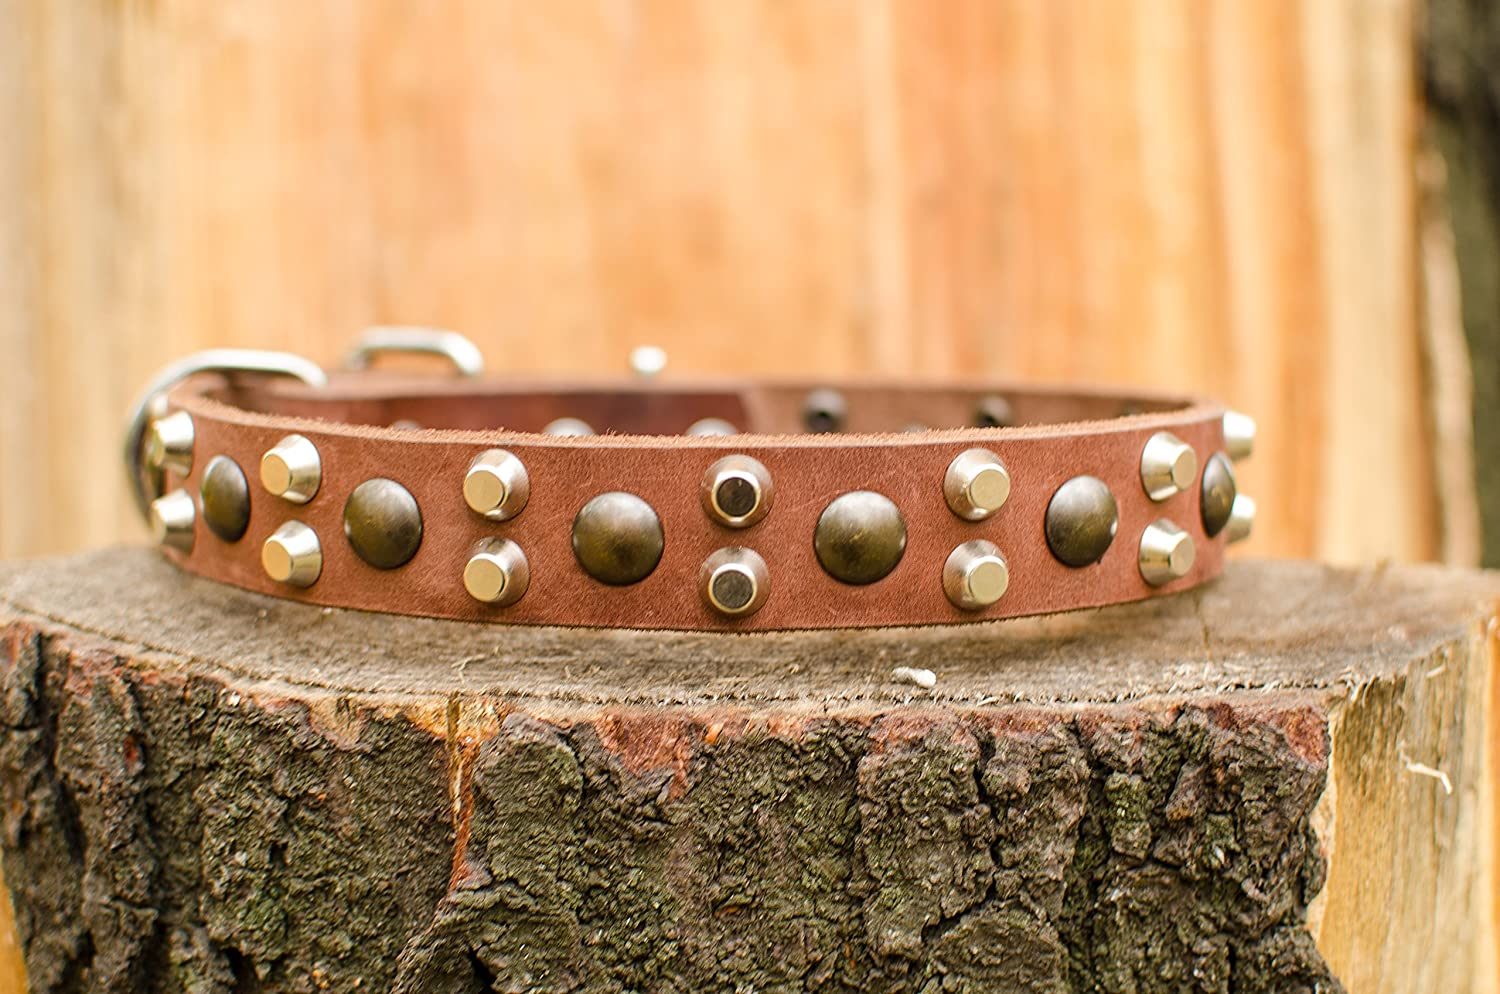 33 inch Fashion Dog Tan Leather Dog Collar with Pyramids and Studs 1 1 5 inch (30 mm) wide